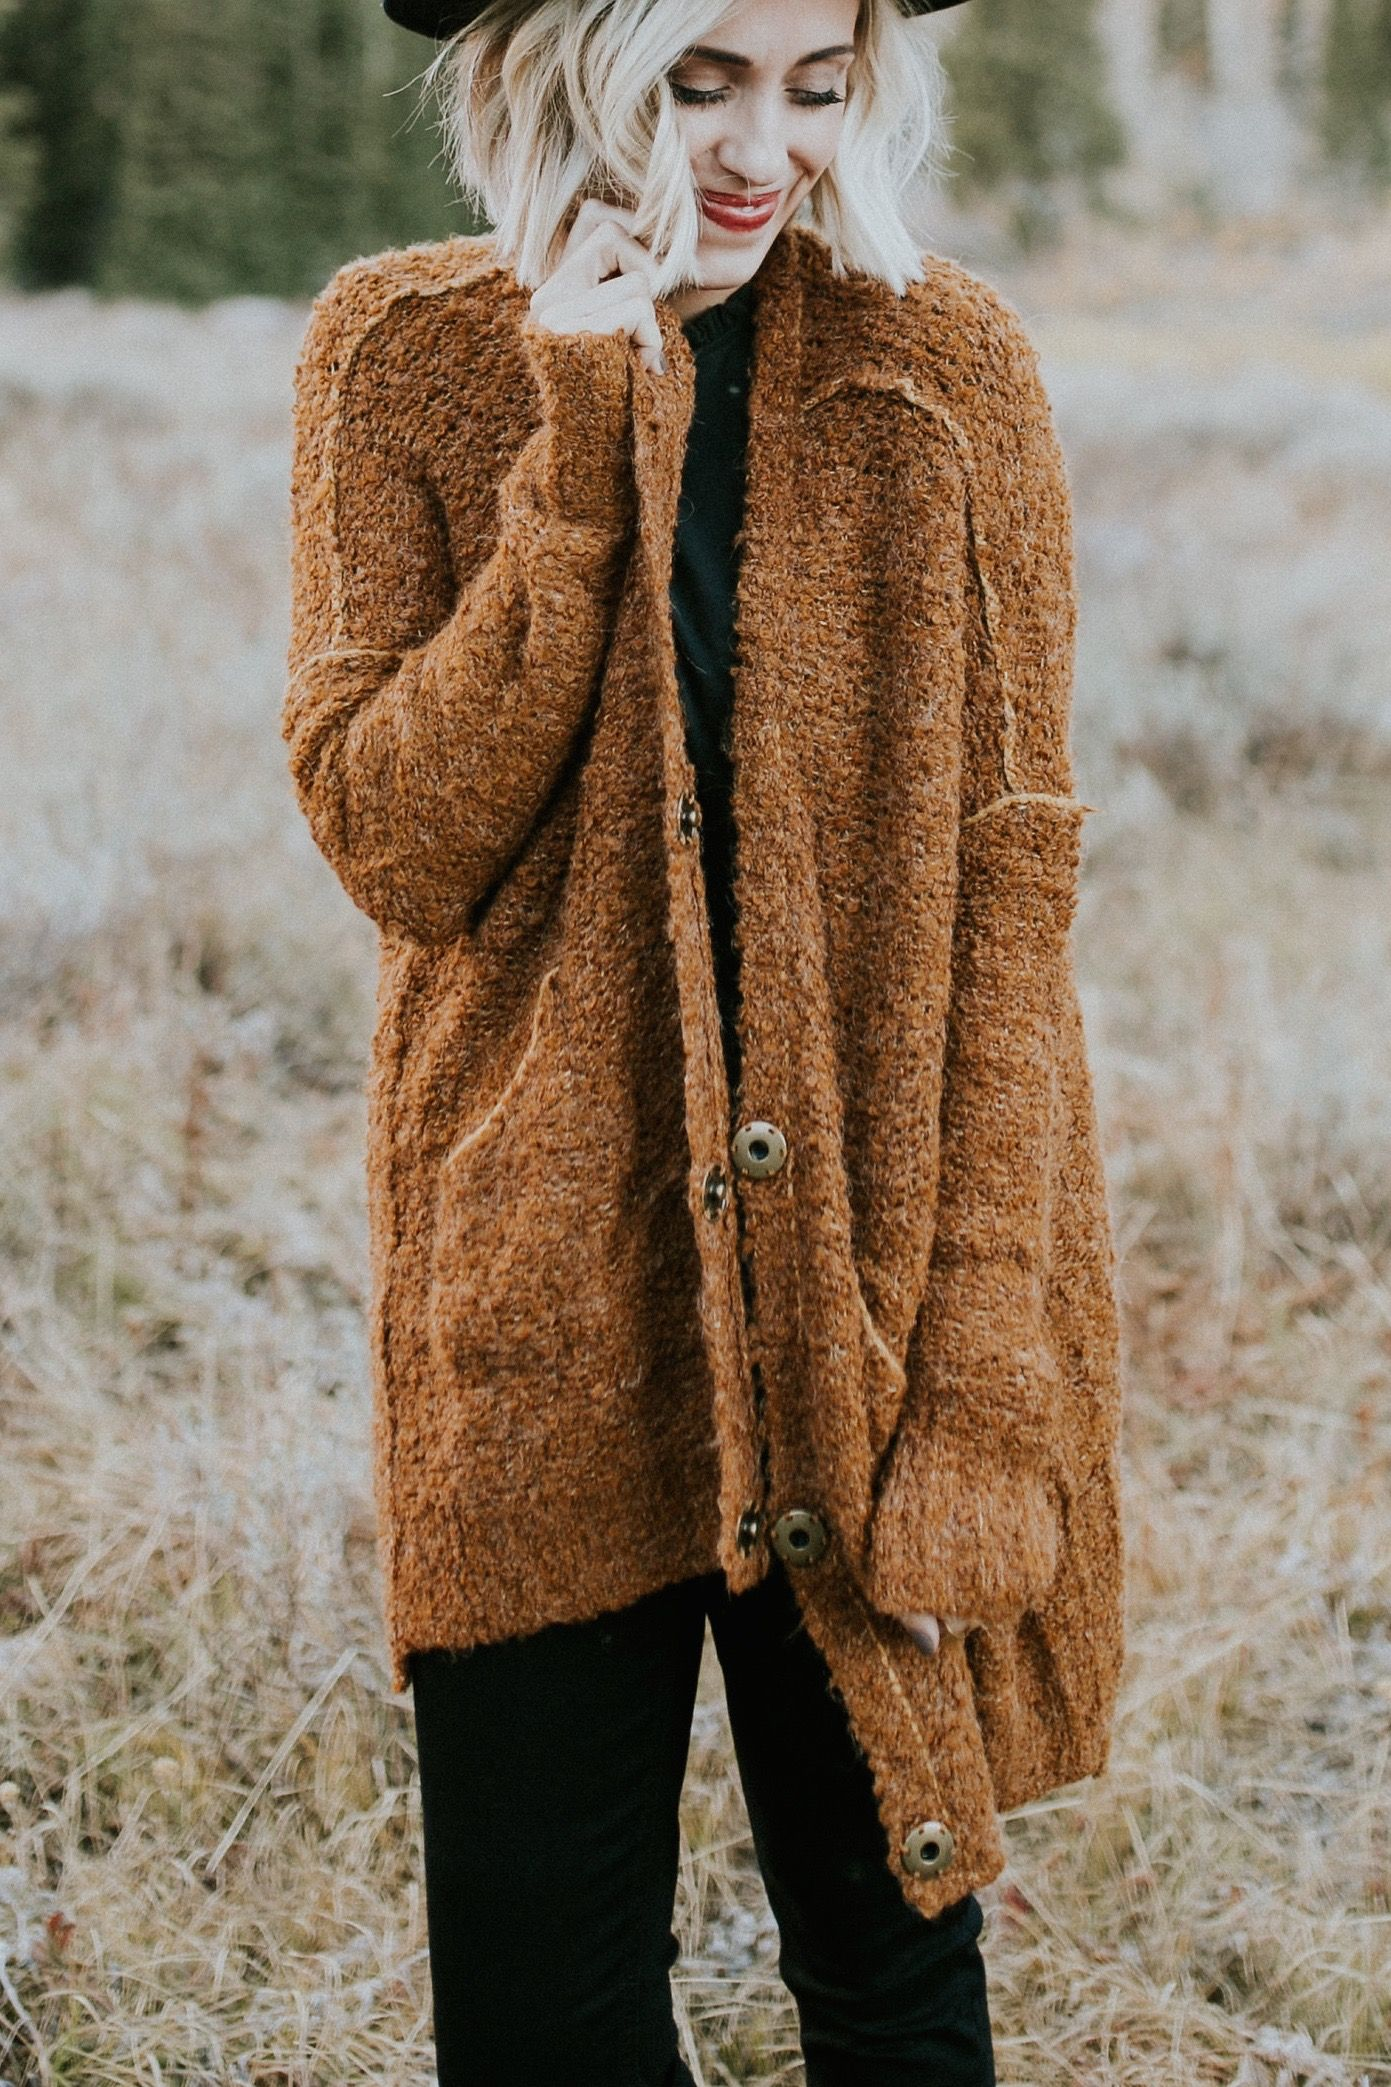 ROOLEE | Layered Up. | Pinterest